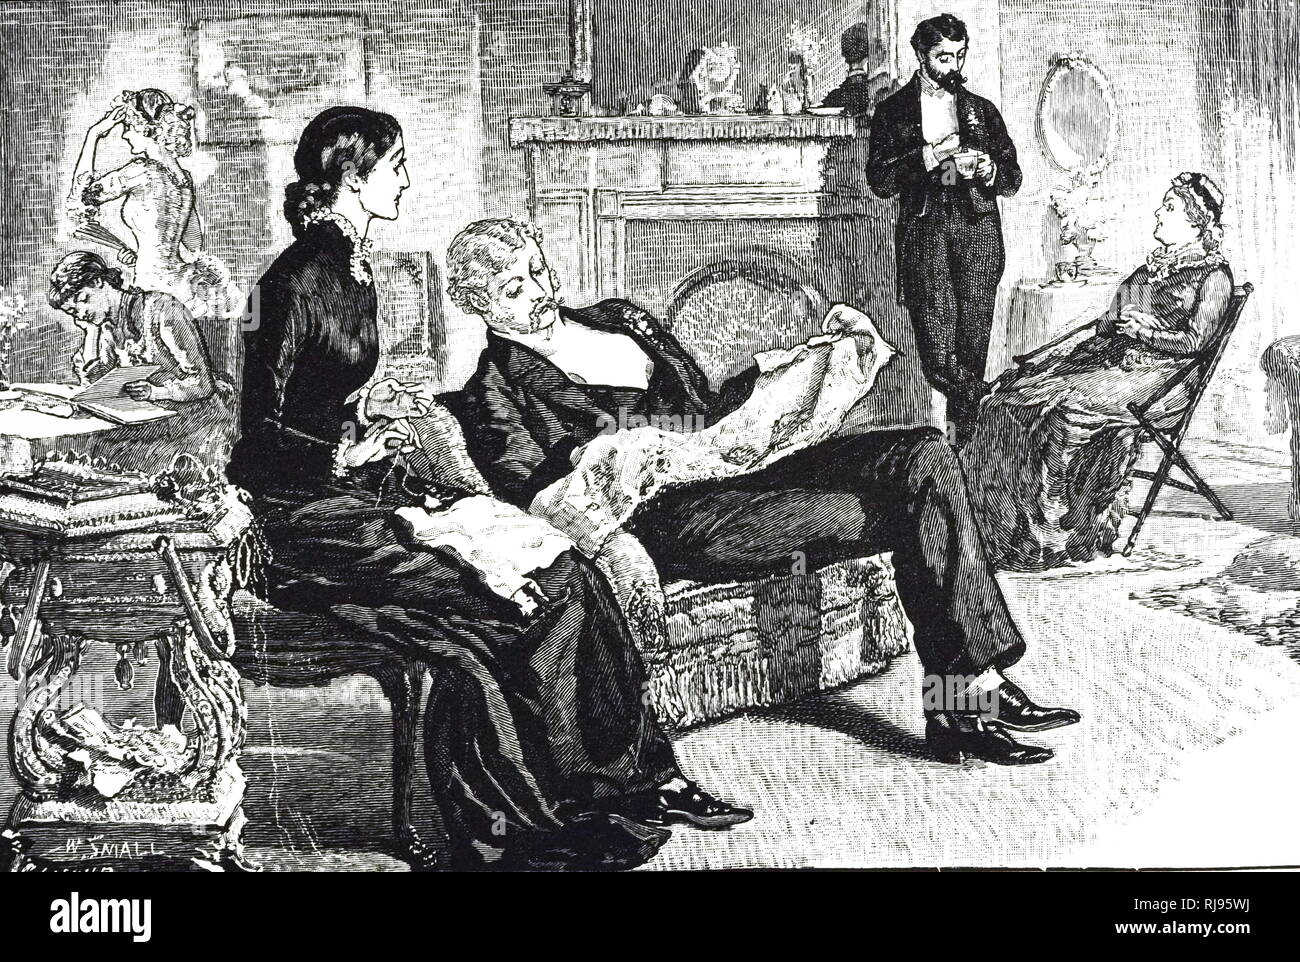 An engraving depicting a middle-class Victorian family. Illustrated by William Small (1843-1929) a Scottish born artist. Dated 19th century - Stock Image